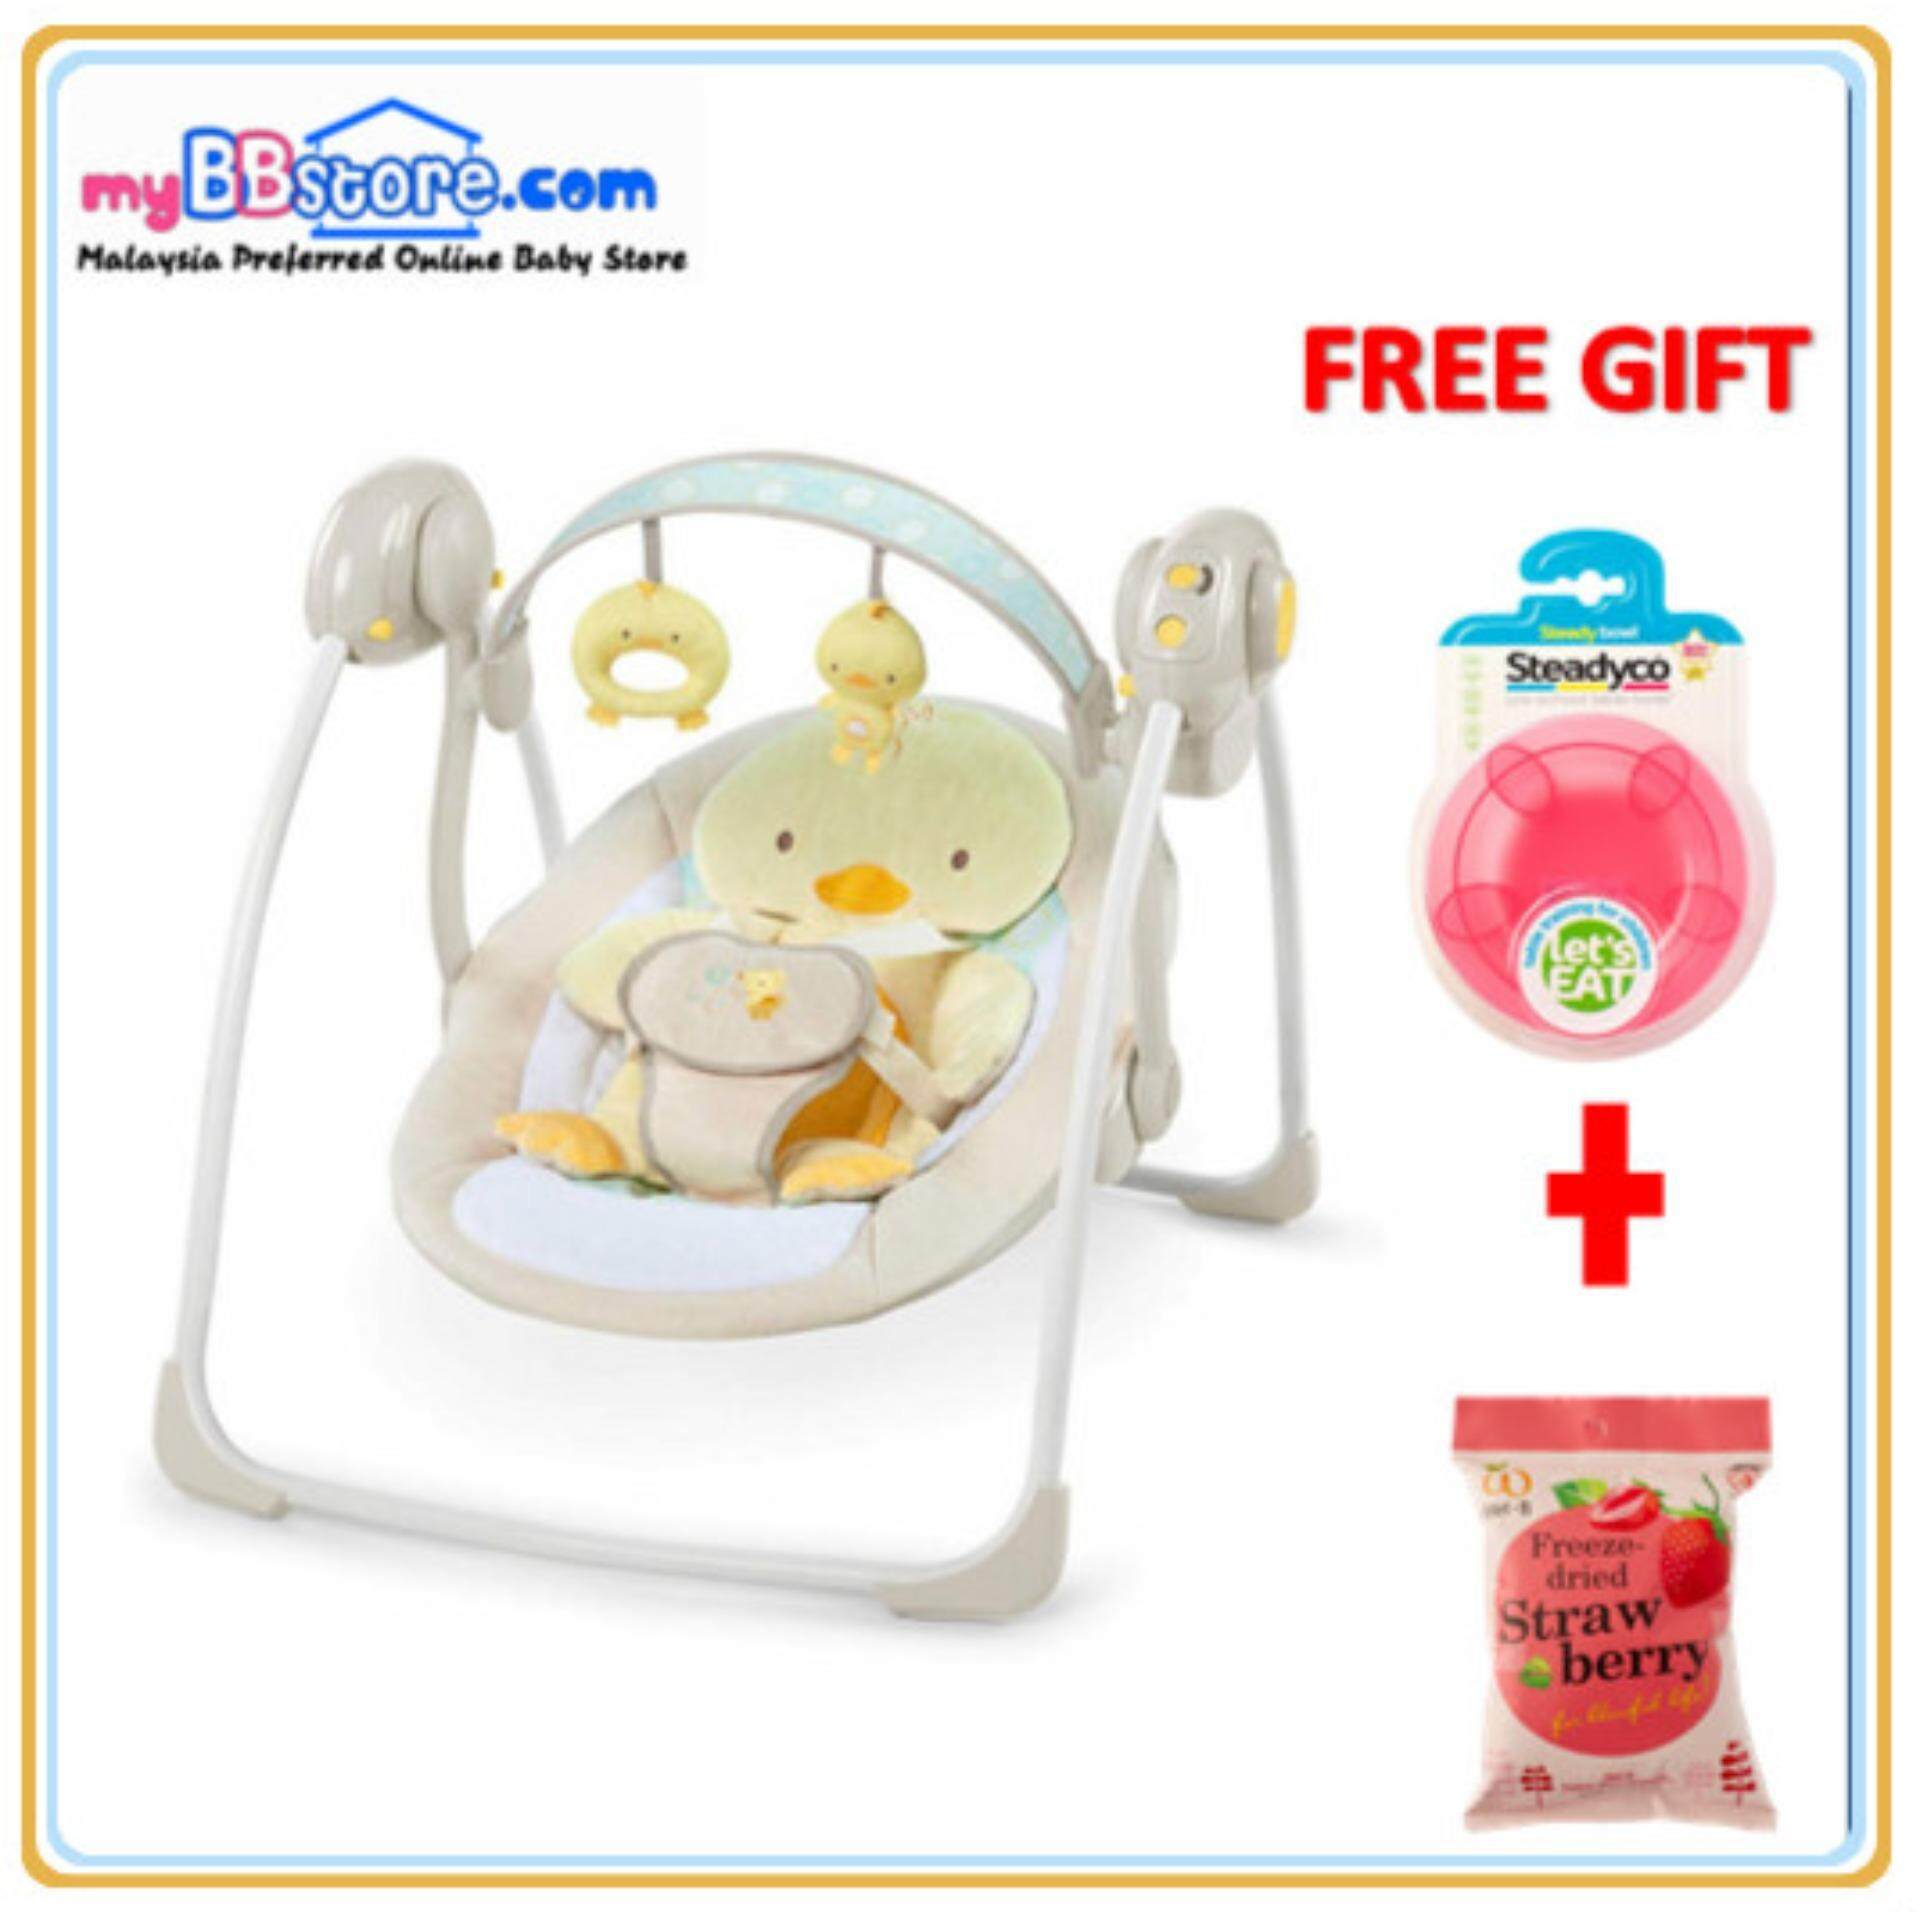 d0c30bb46579 Bright Starts: Soothe n Delight Portable Swing Quack & Cuddles